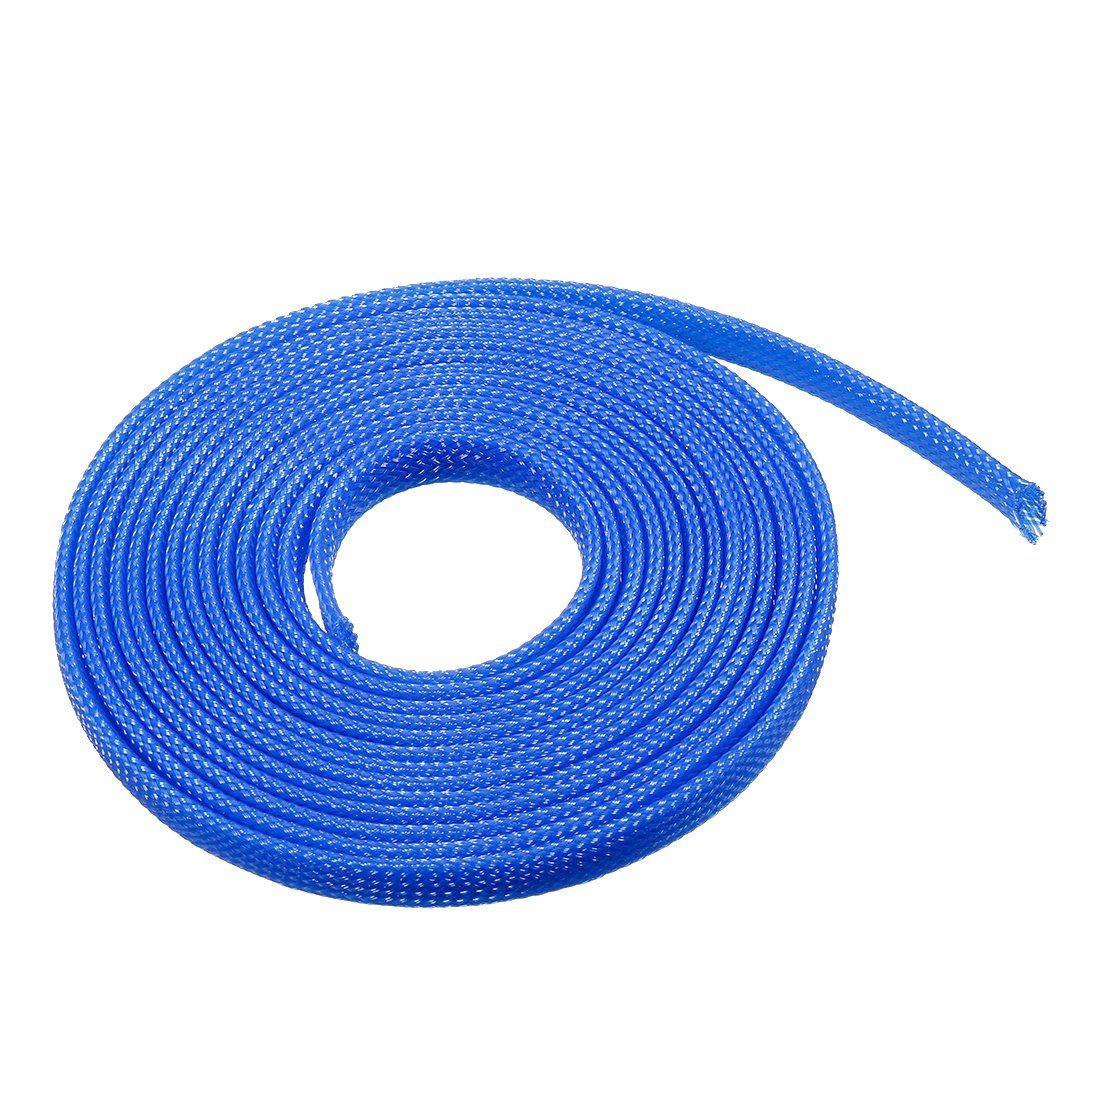 sourcing map 9.84ft 8mm Blue PET Expandable Braided Sleeving 3 Meter Cable Management Sleeve Cord Organizer for Wrap Protect Cables